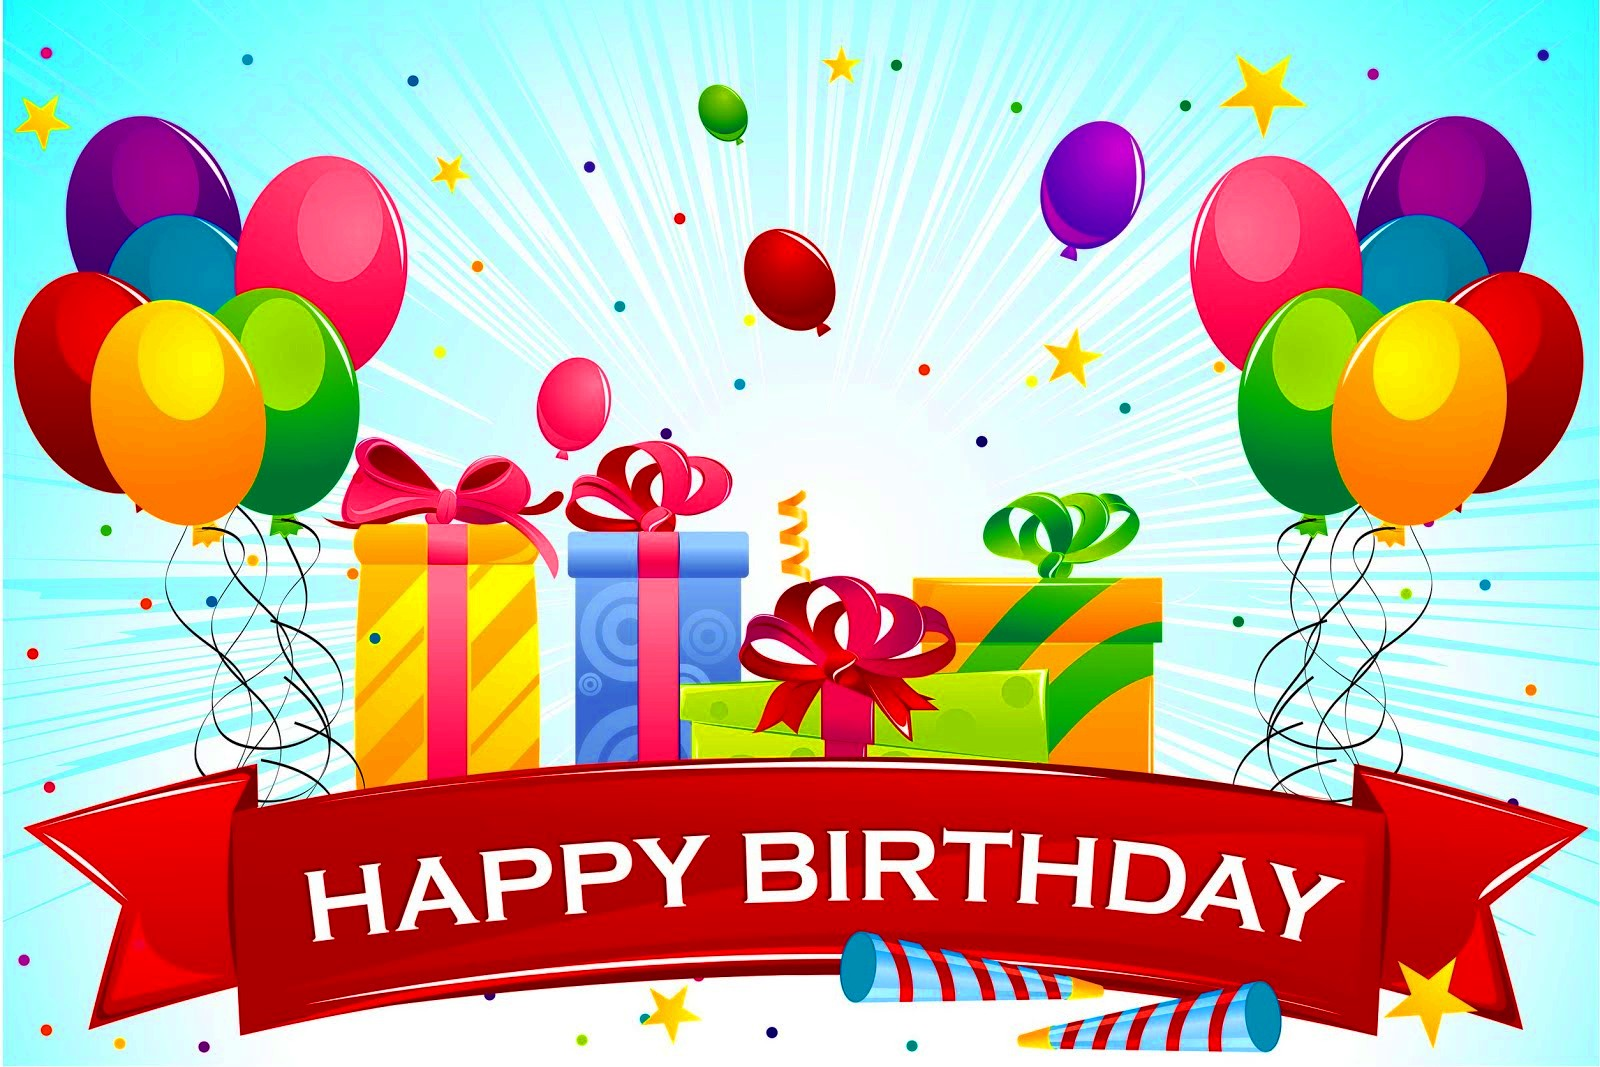 new birthday images free download ; Happy_Birthday_Song_Free_Download_01